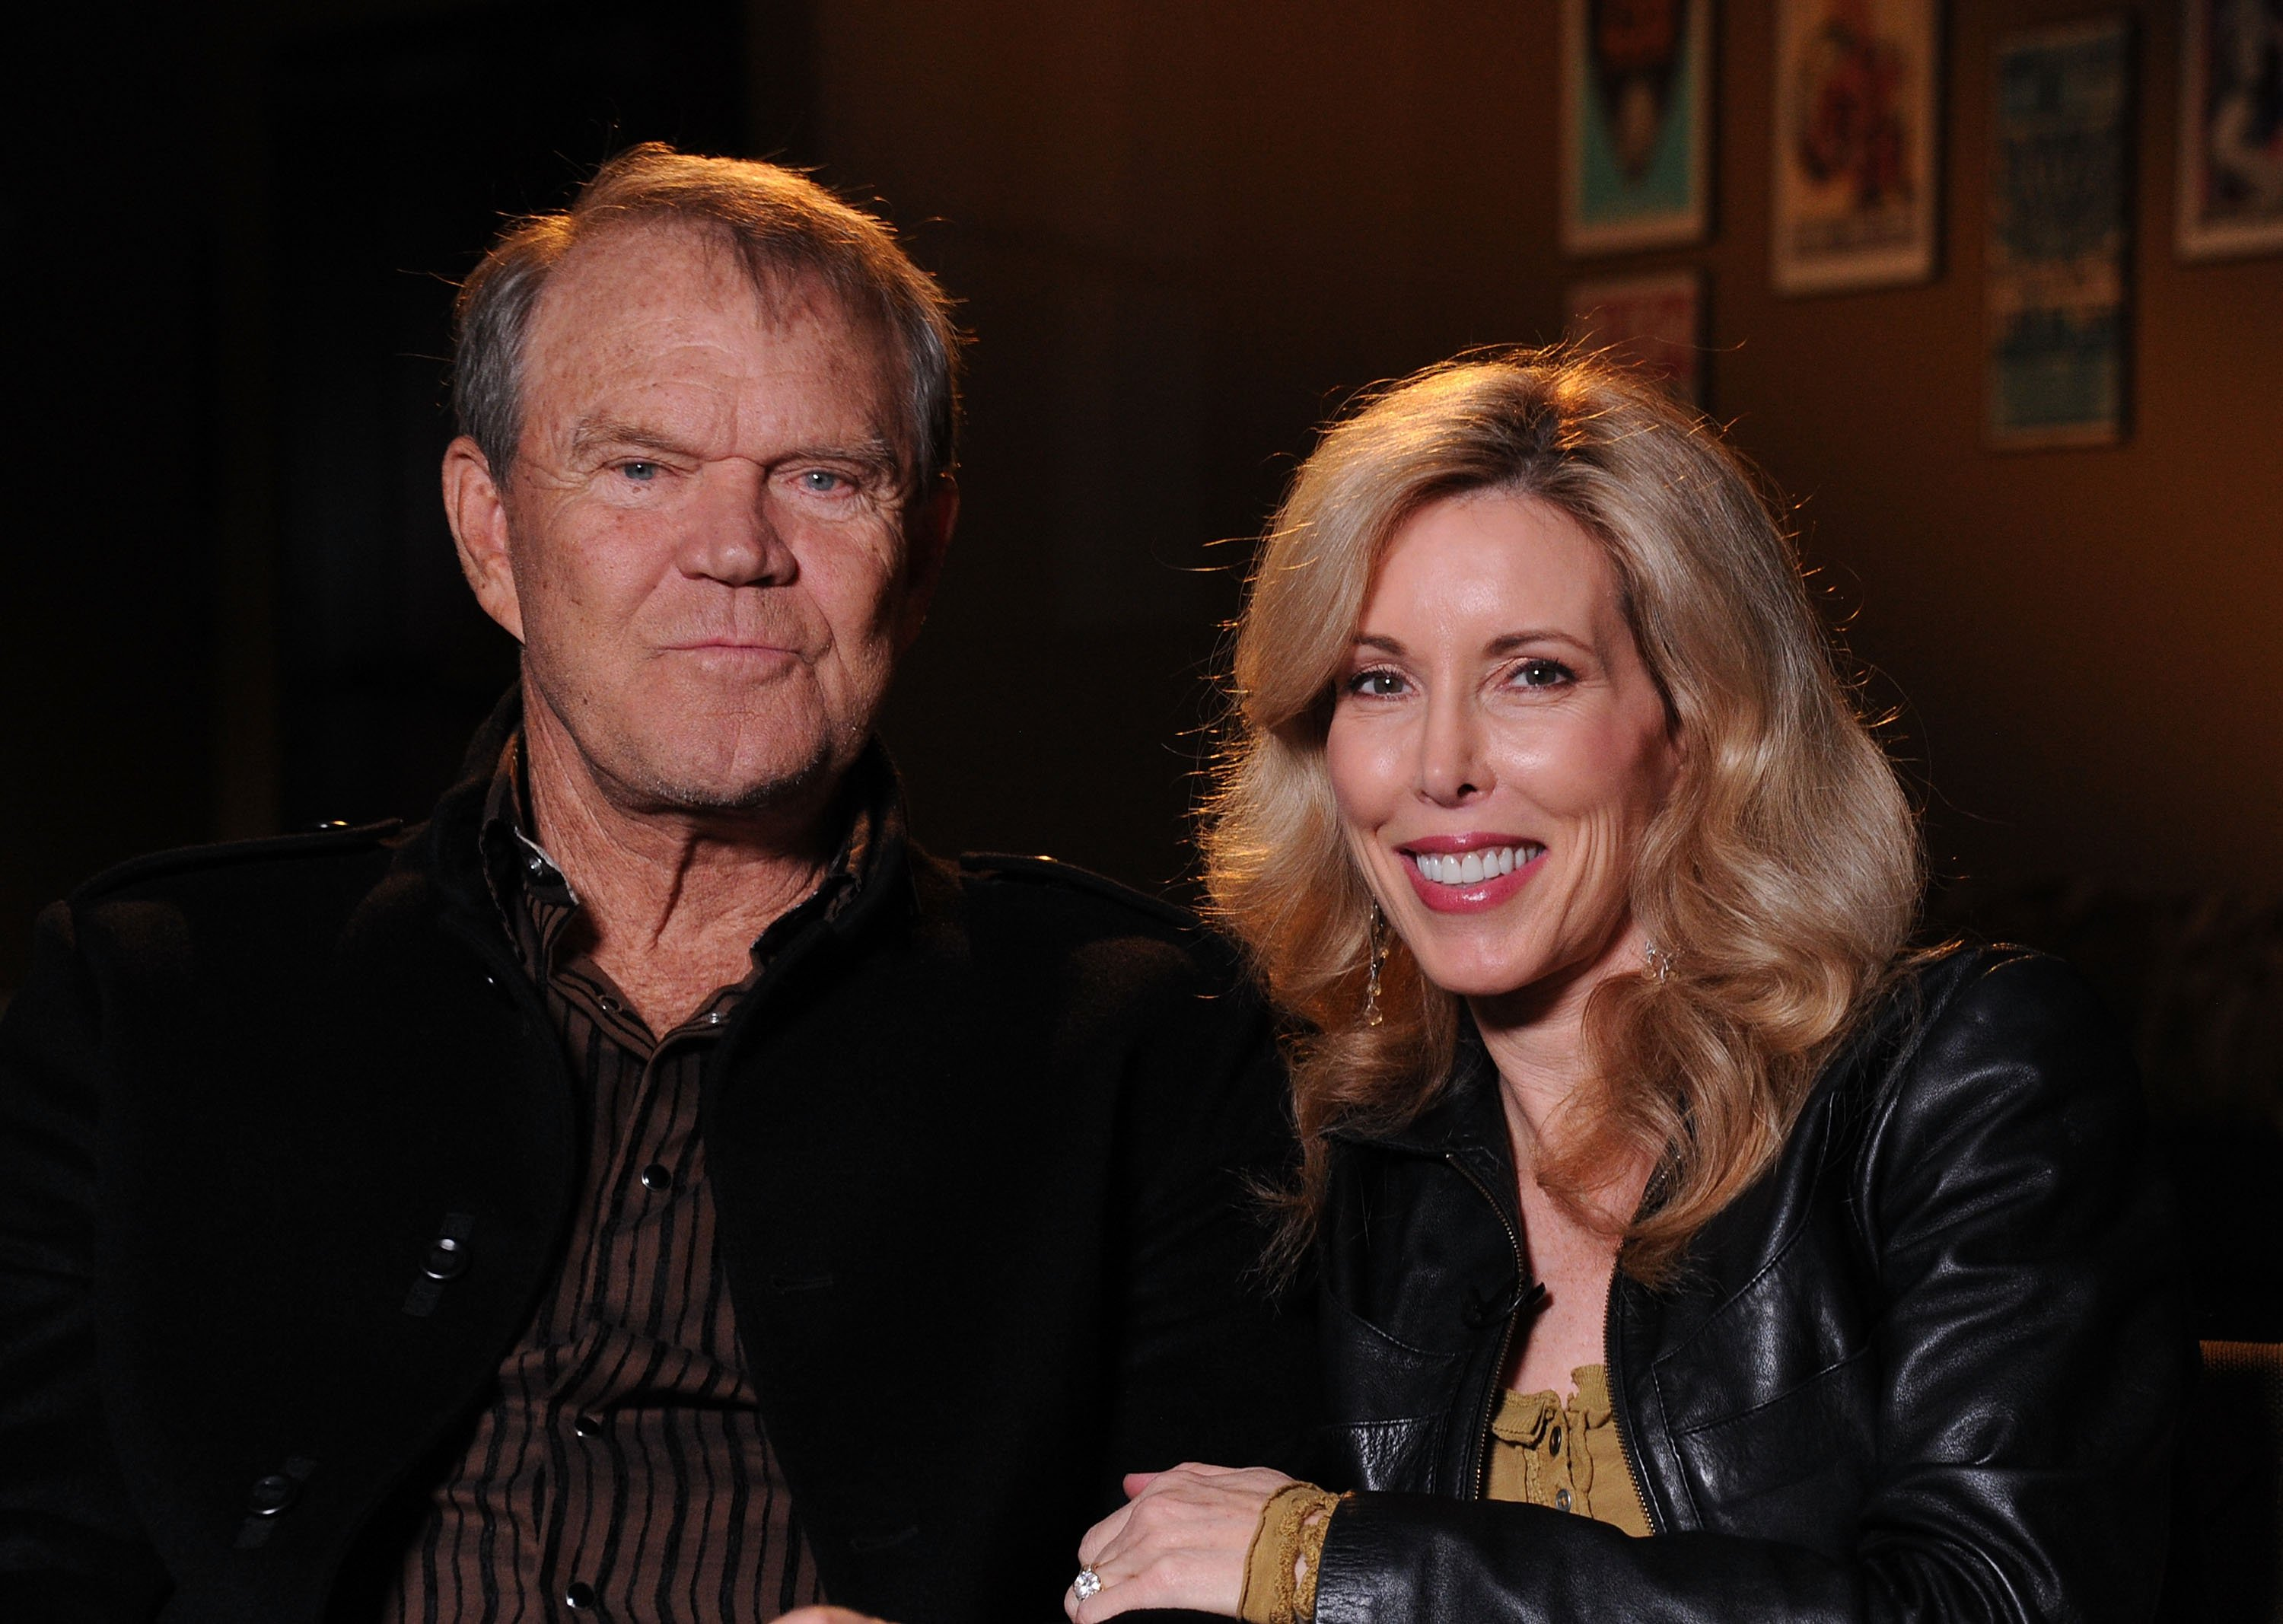 Glen Campbell & Kim at the Bridgestone Arena on Sep. 19, 2011 in Nashville, Tennessee. |Photo: Getty Images